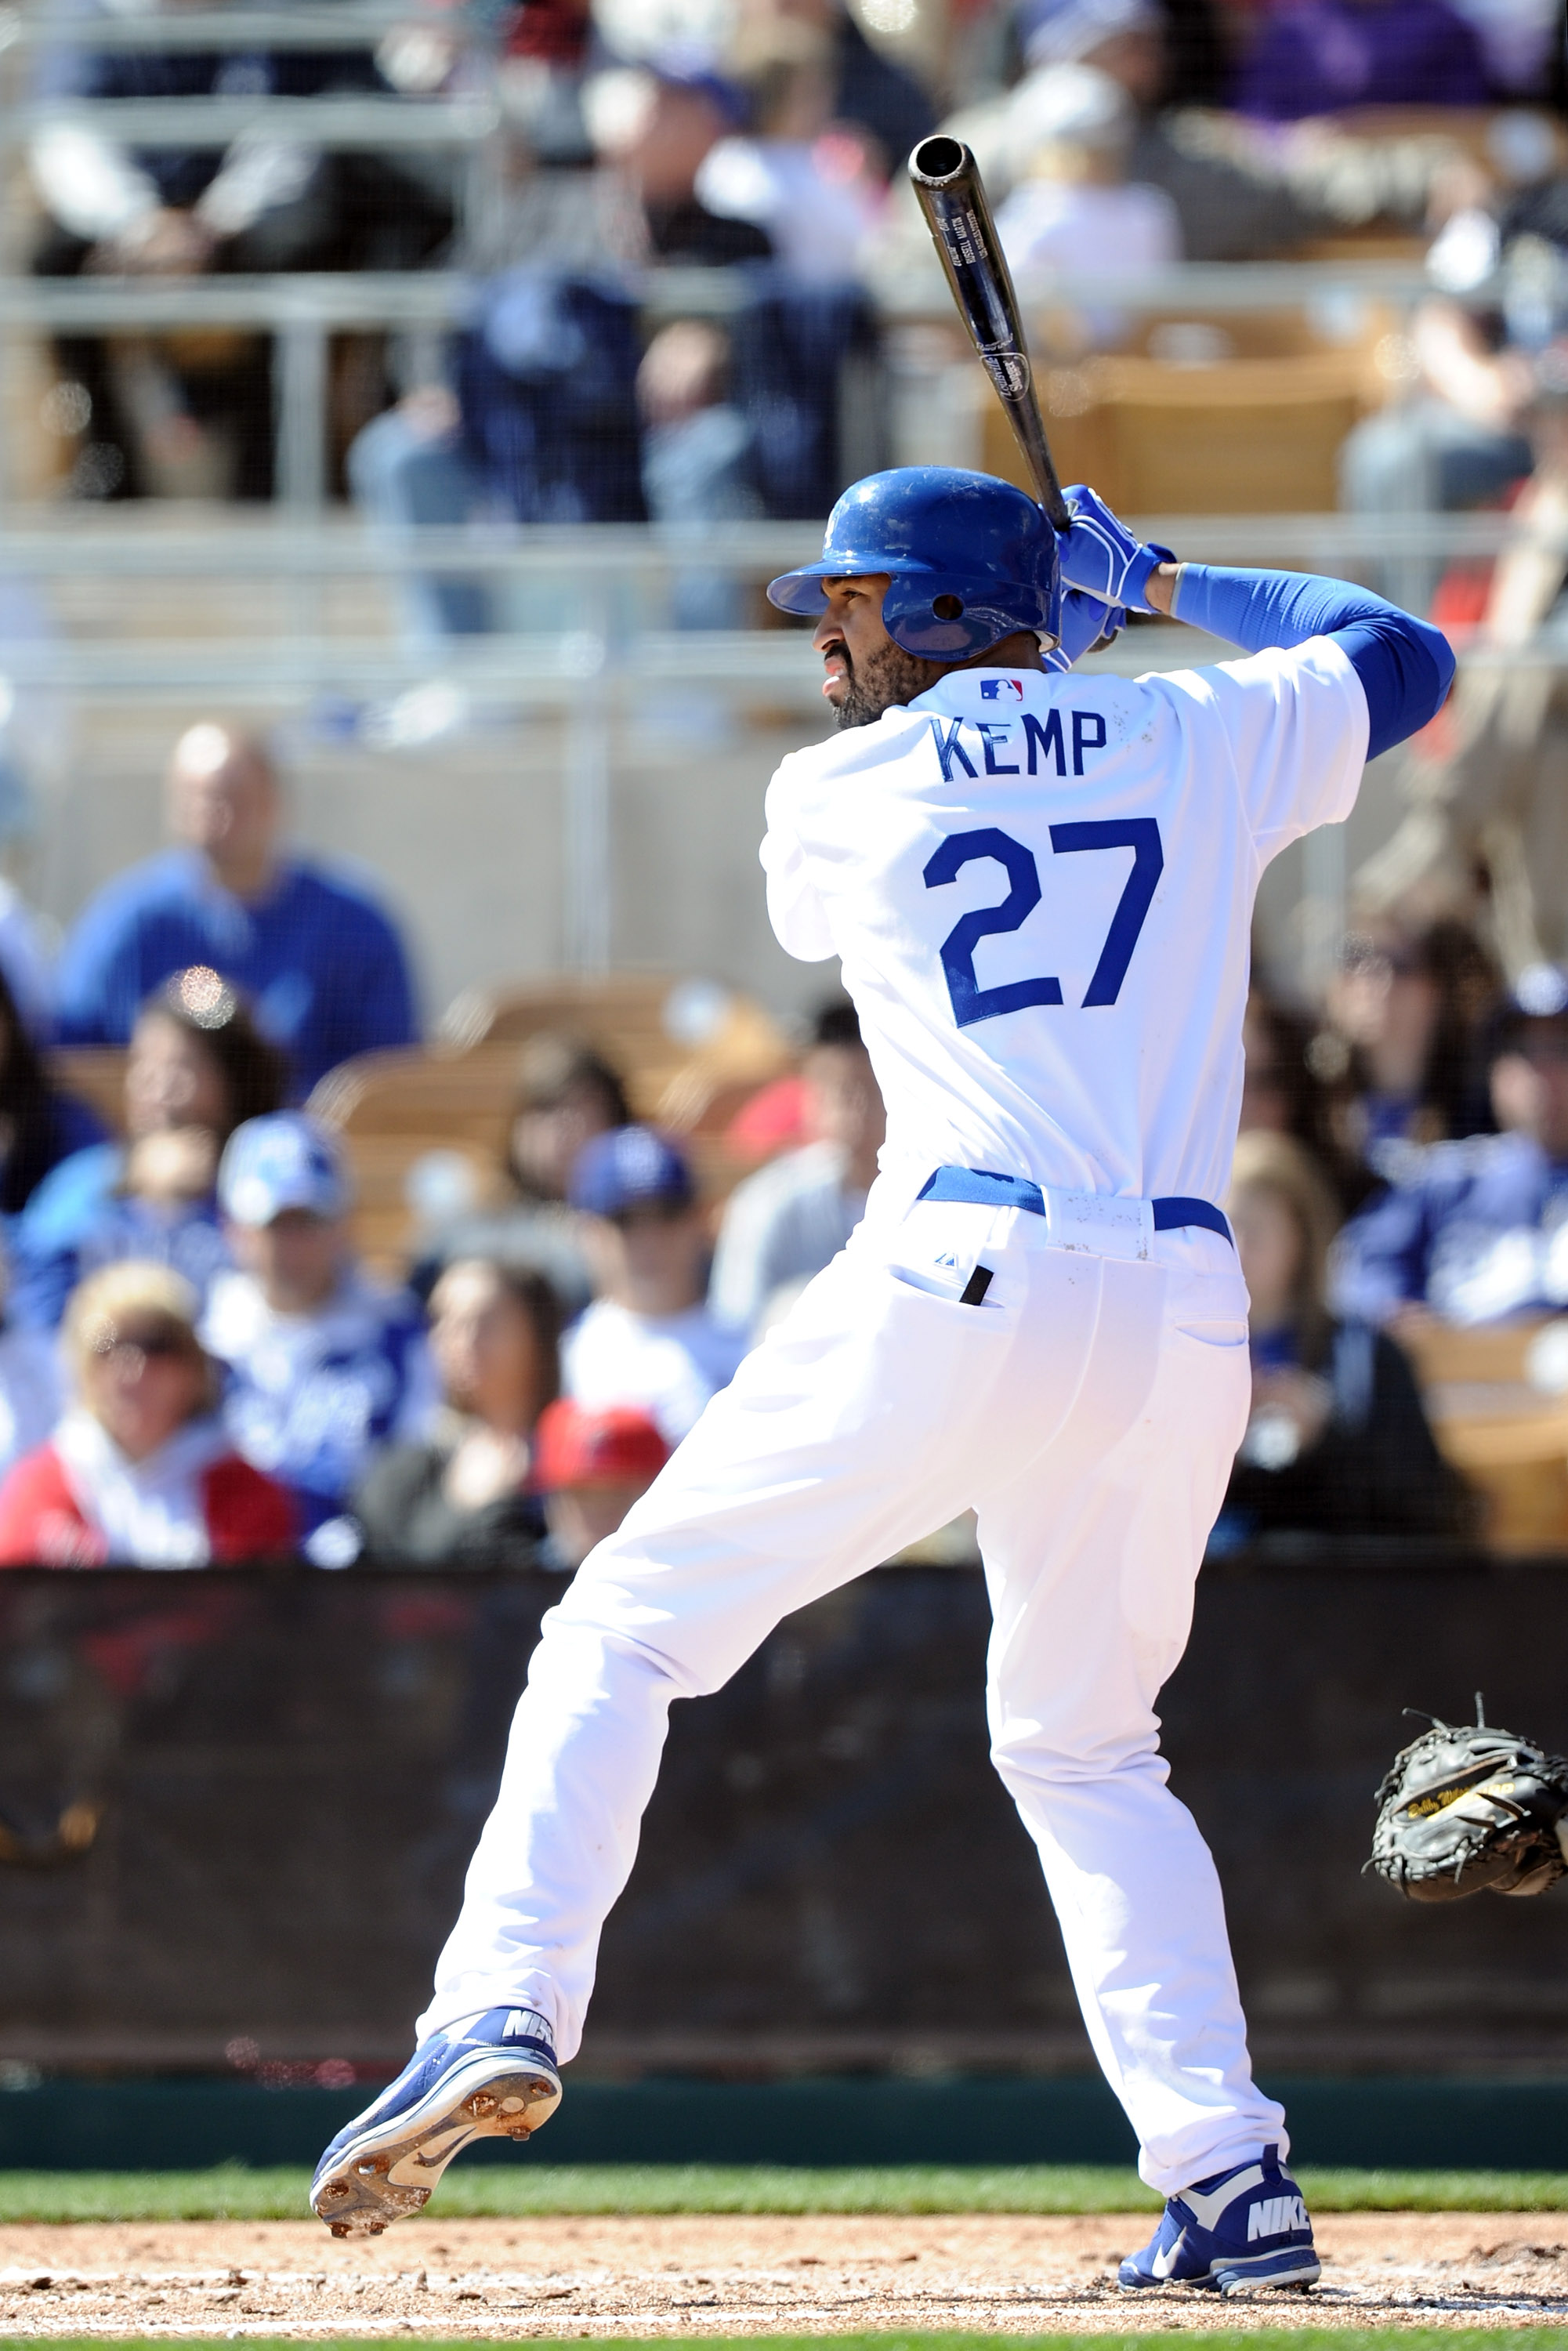 PHOENIX, AZ - FEBRUARY 27:  Matt Kemp #27 of the  Los Angeles Dodgers at bat during spring training at Camelback Ranch on February 27, 2011 in Phoenix, Arizona.  (Photo by Harry How/Getty Images)